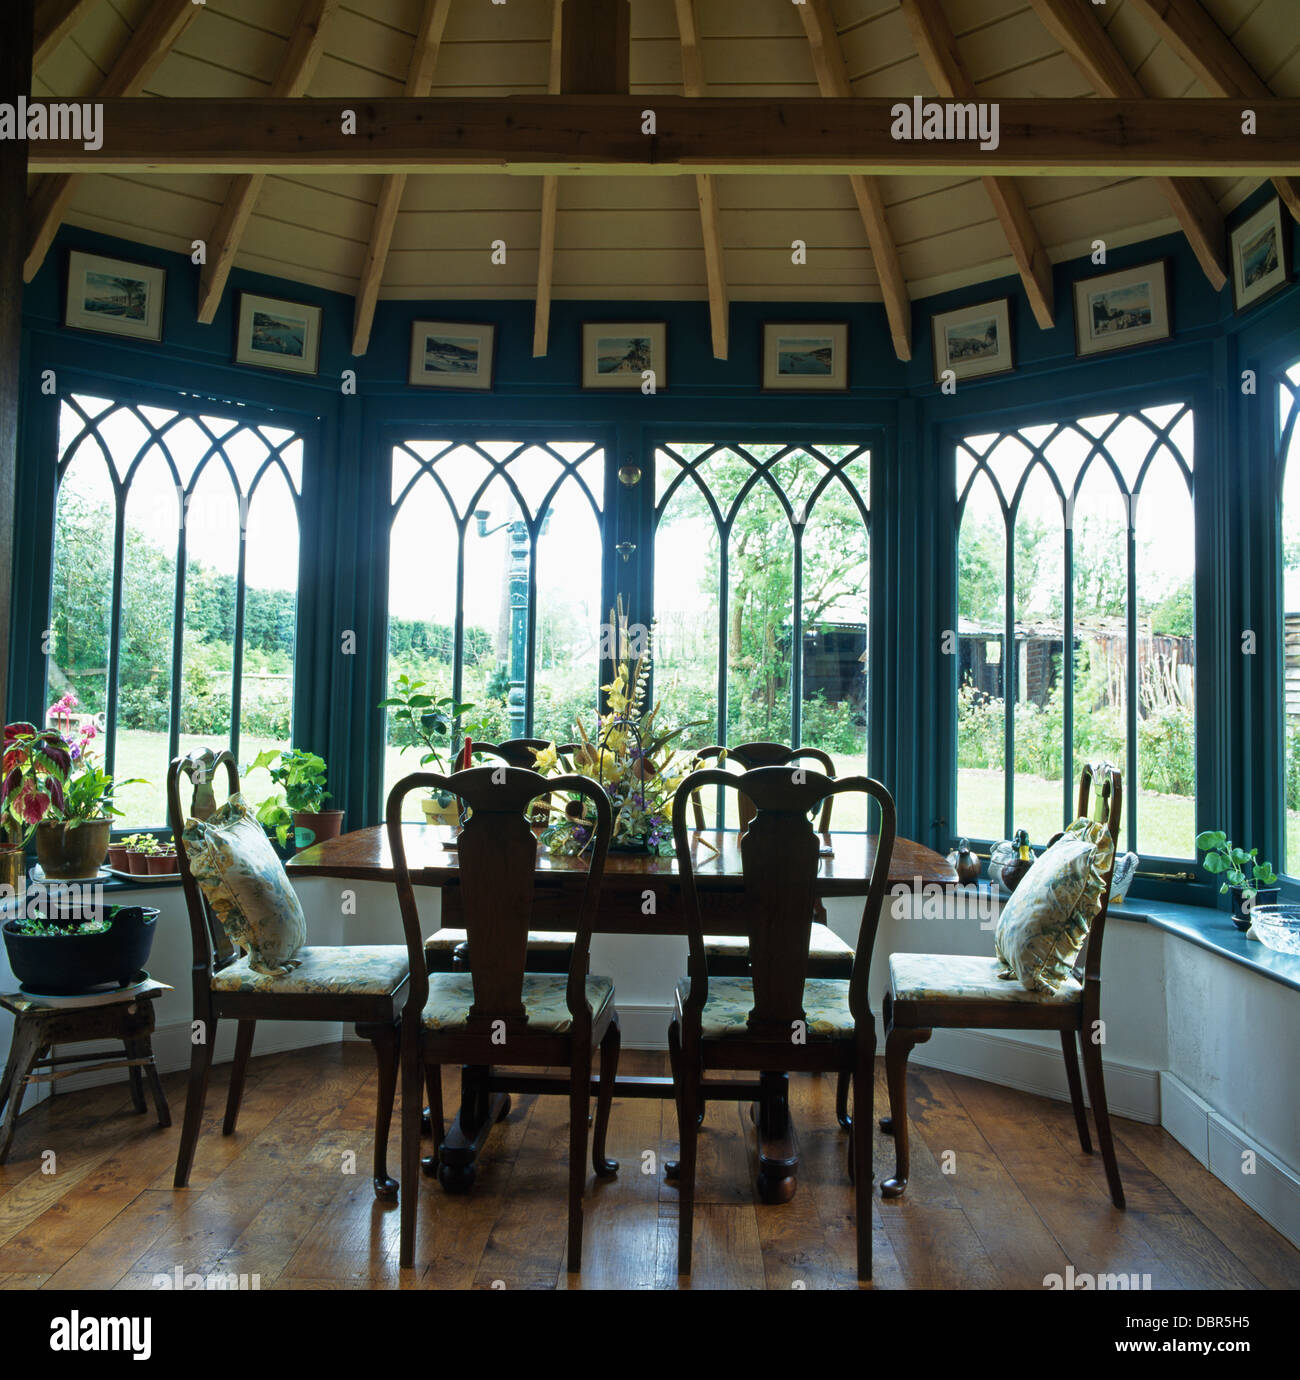 Antique table and chairs in front of bay window in dining room with wooden  floor and ceiling in newly-built Tudor-style house - Antique Table And Chairs In Front Of Bay Window In Dining Room With